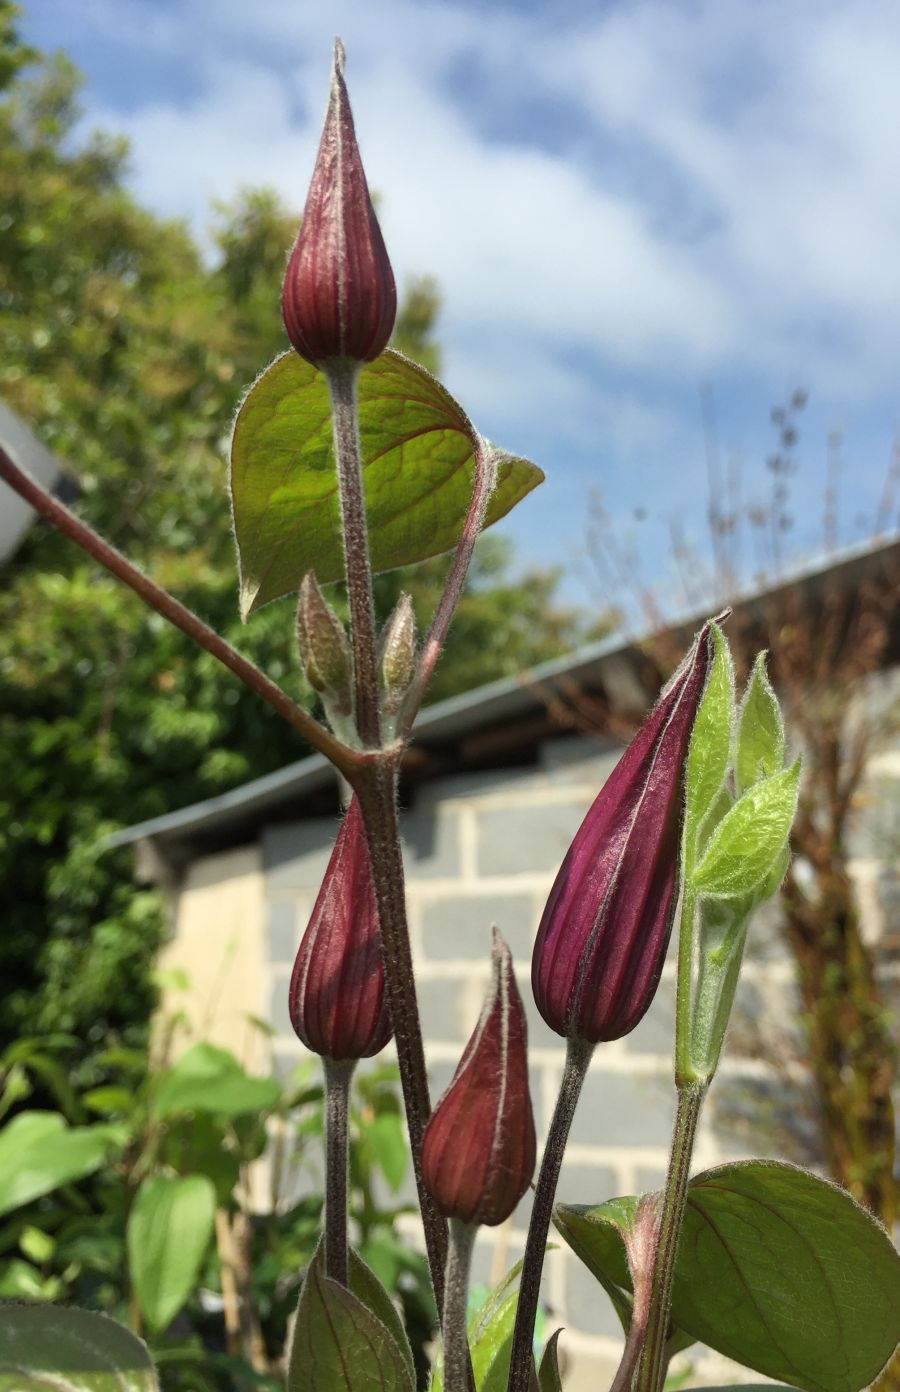 Clematis Blue Pirouette in bud